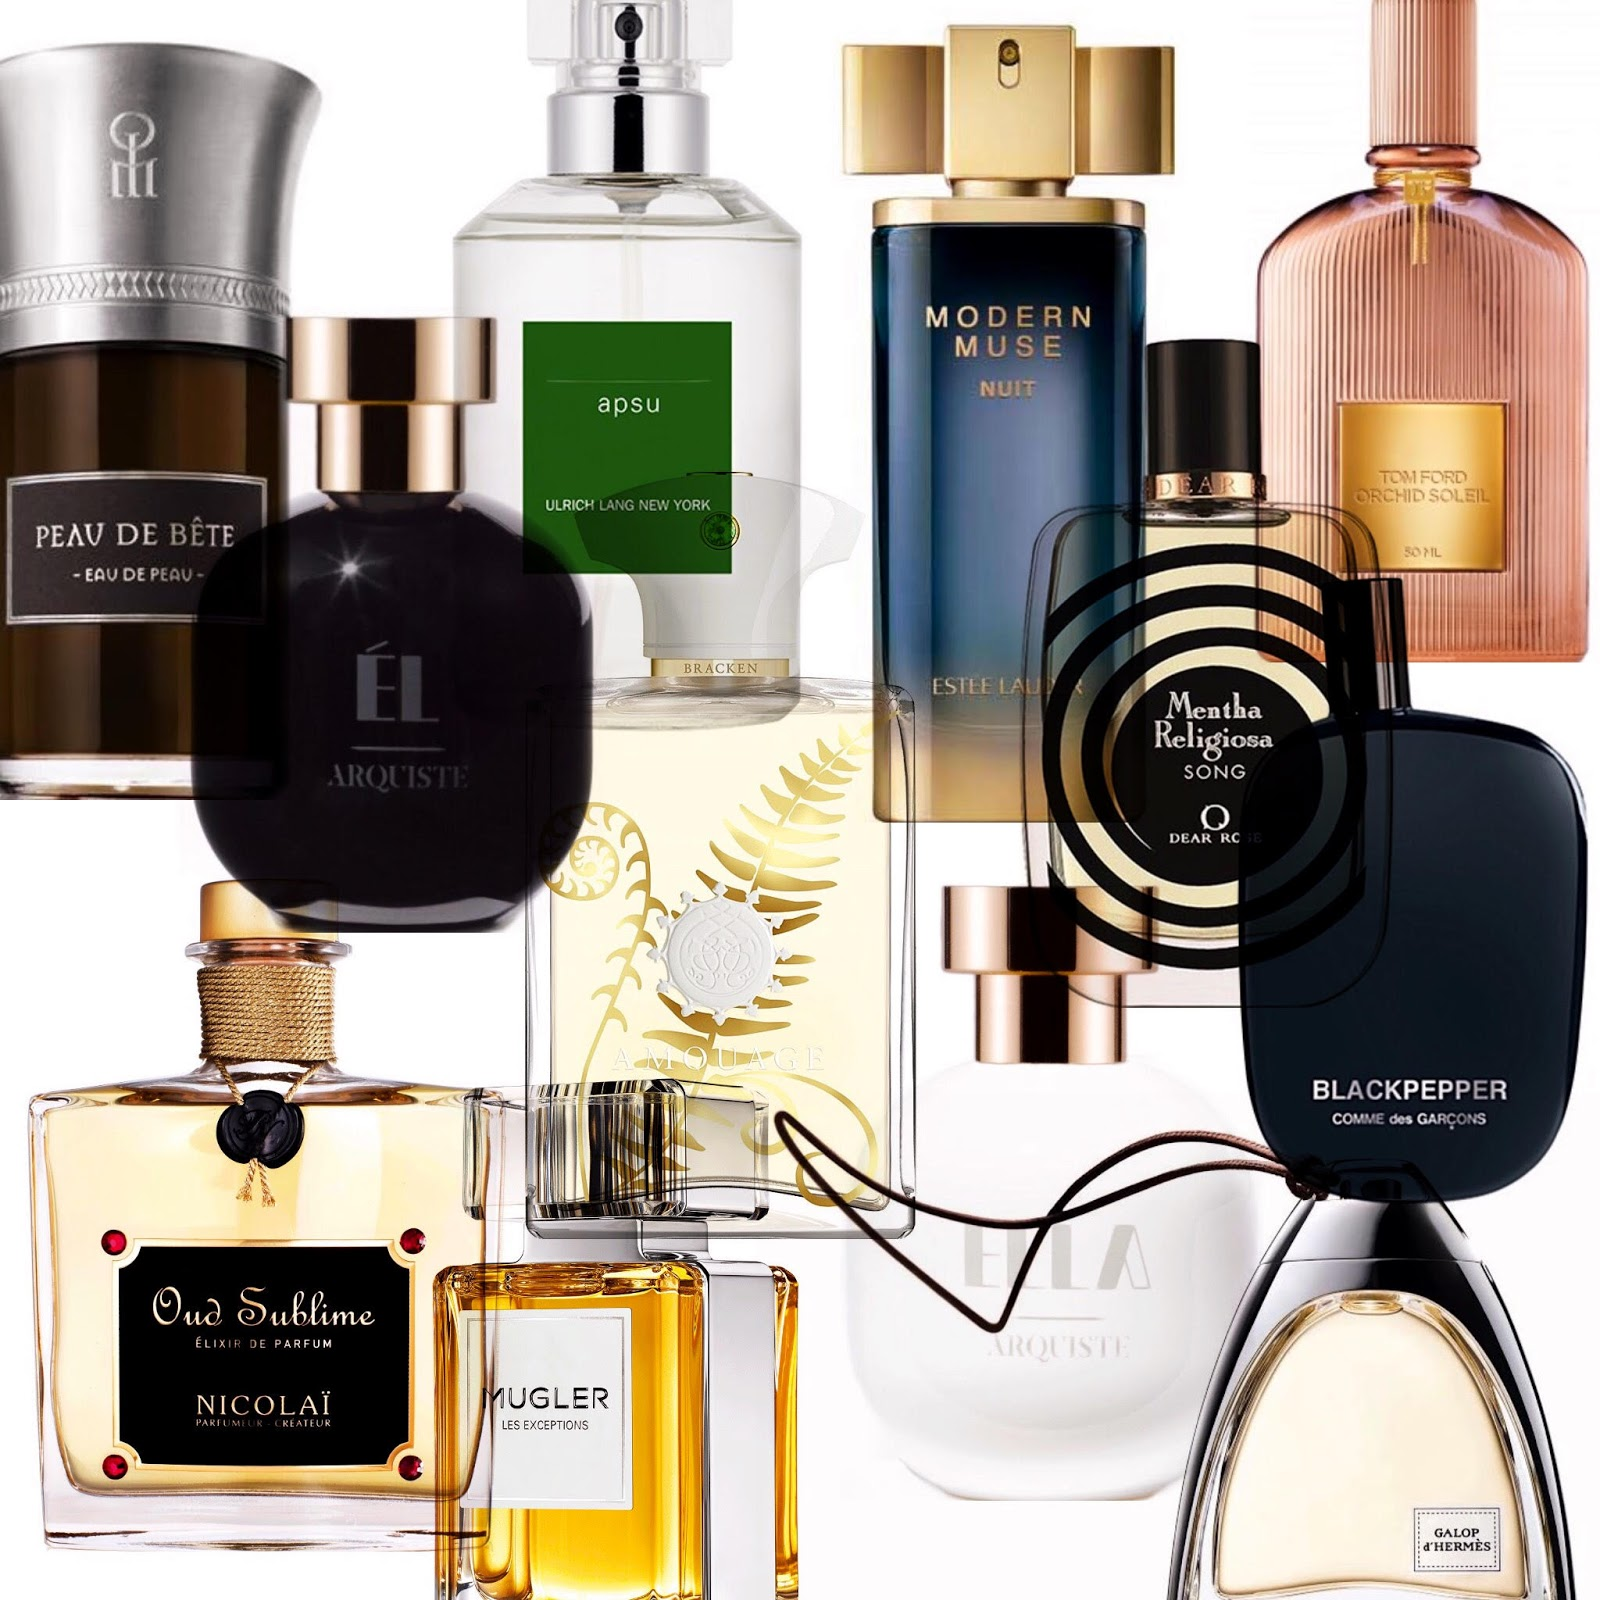 Forum on this topic: Scents May Sway Your Sense of Beauty, scents-may-sway-your-sense-of-beauty/